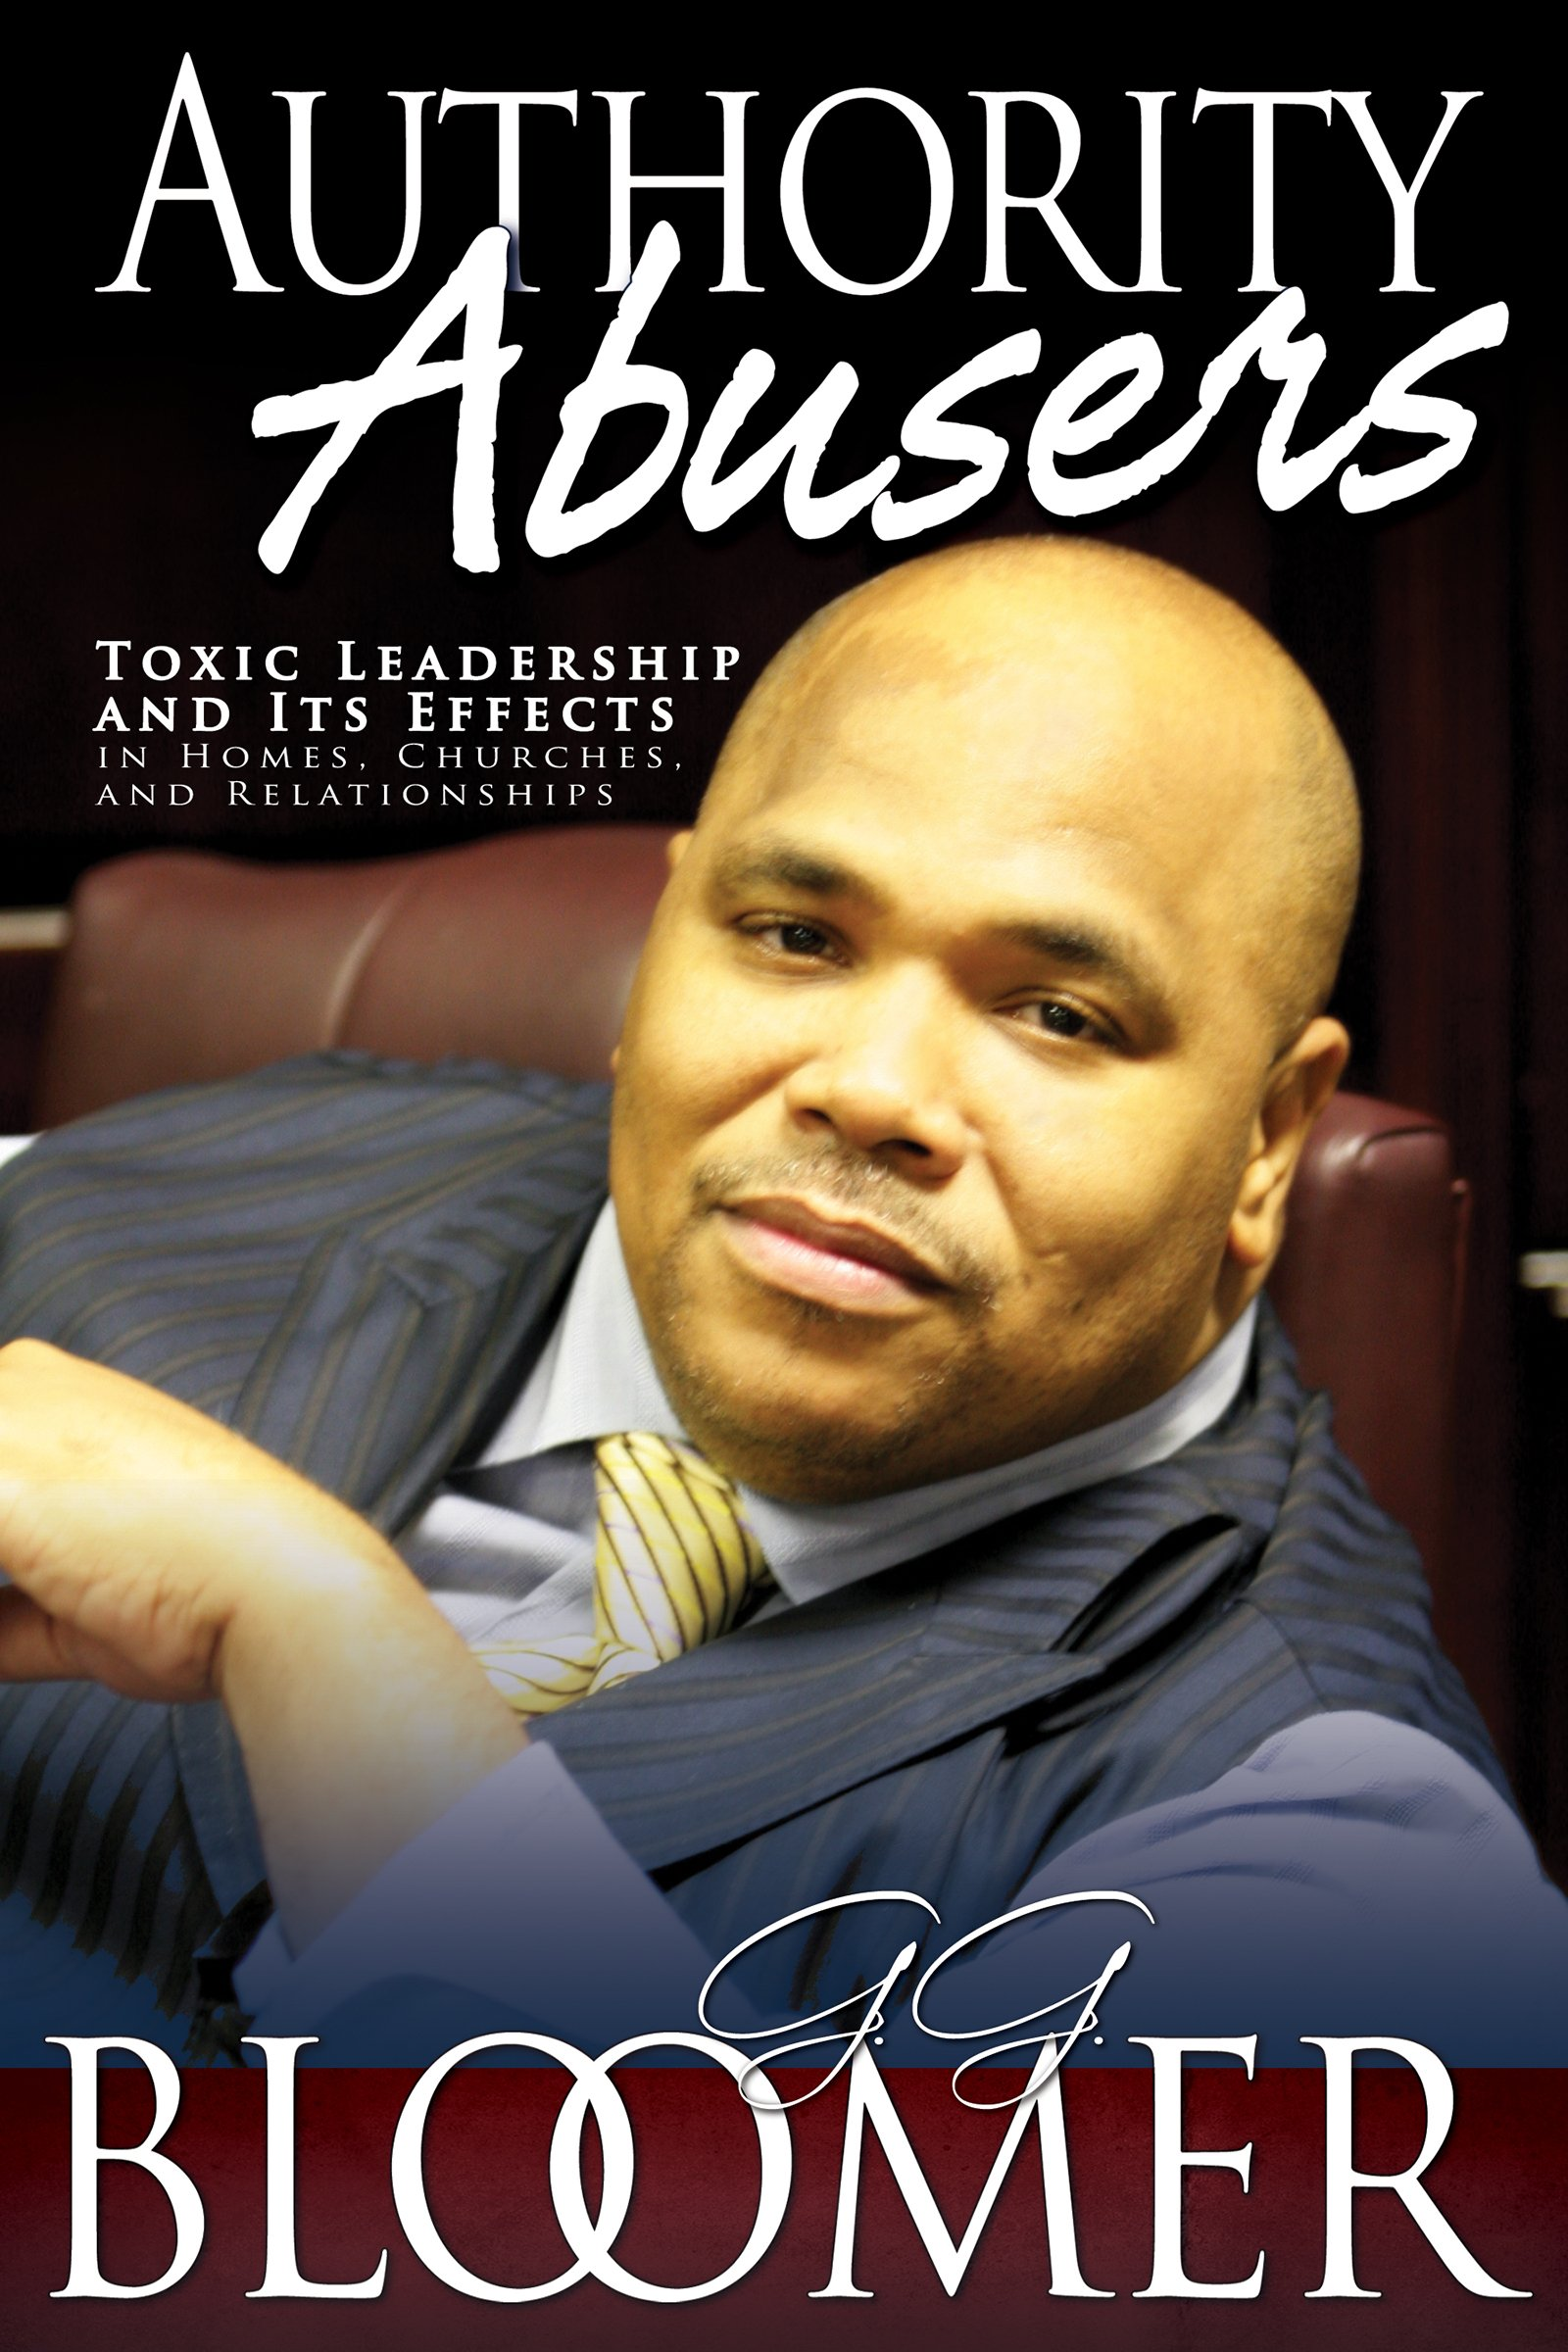 Authority Abusers: Toxic Leadership and Its Effects in Homes, Churches, and Relationships